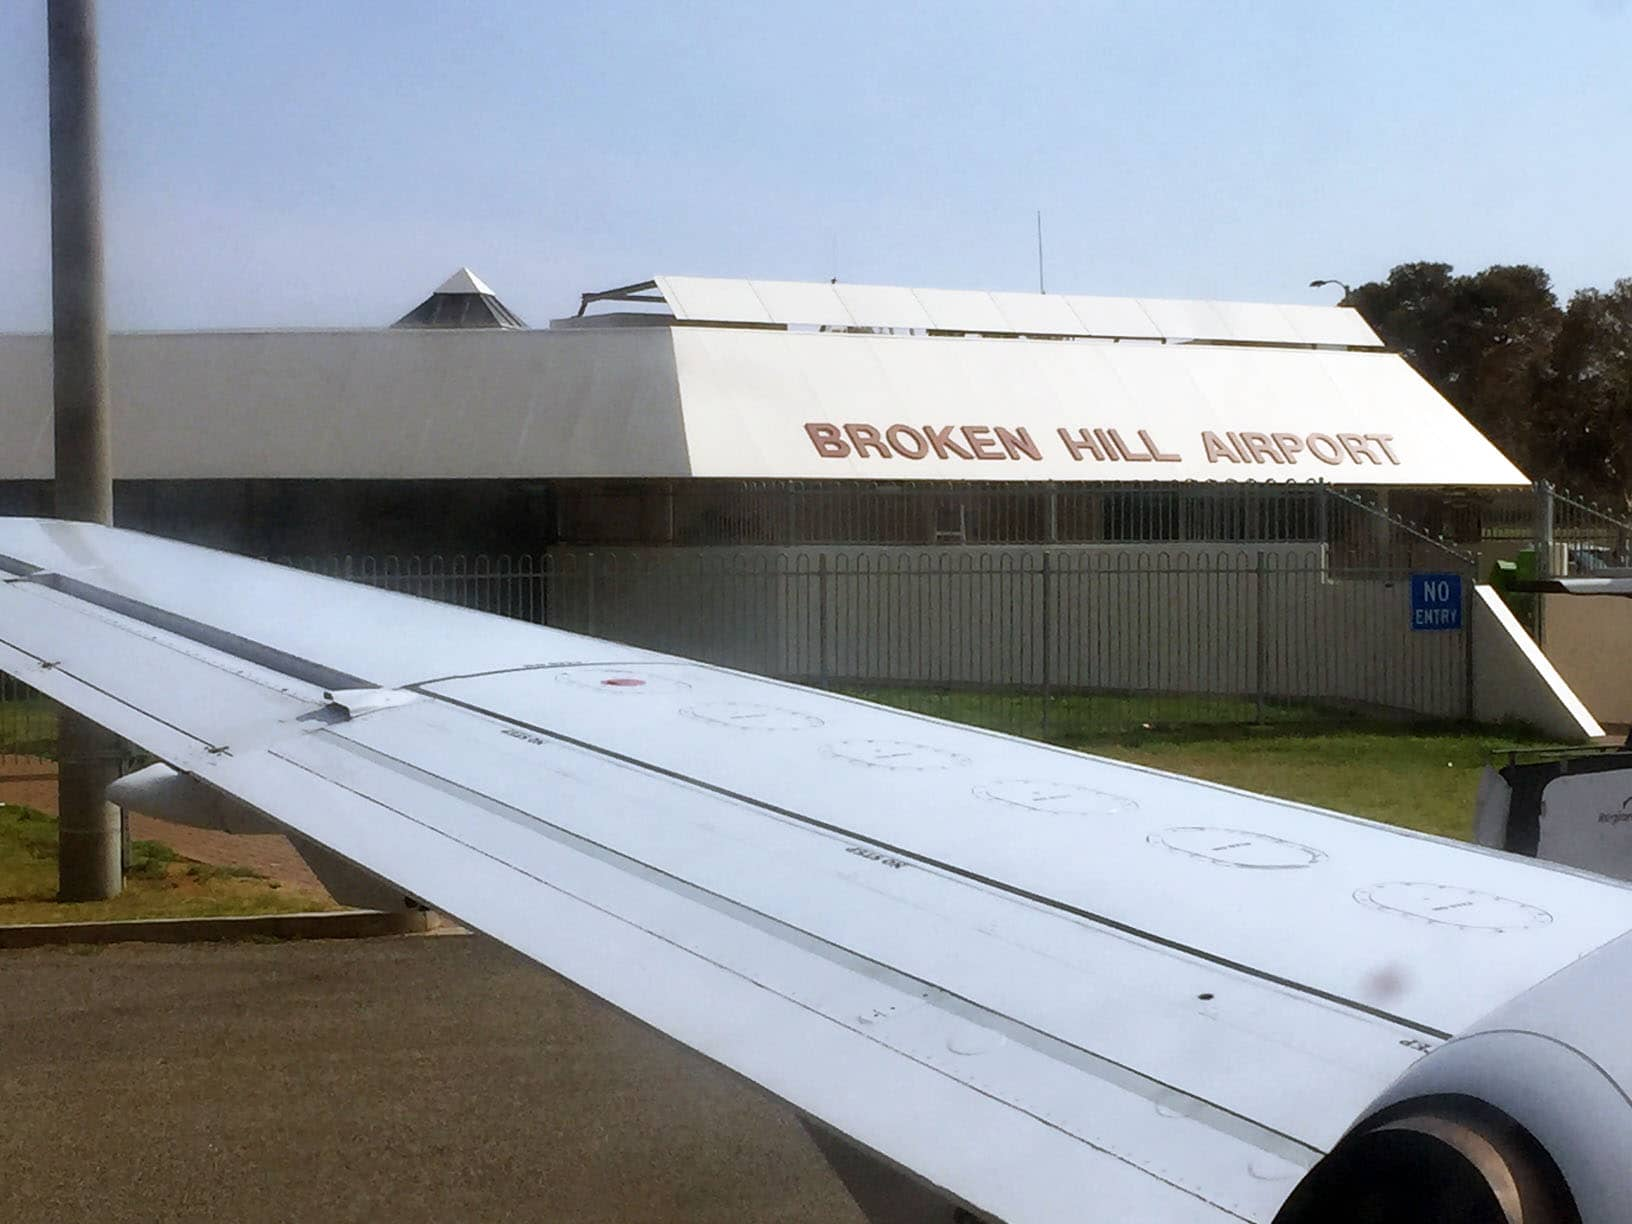 Broken Hill Airport